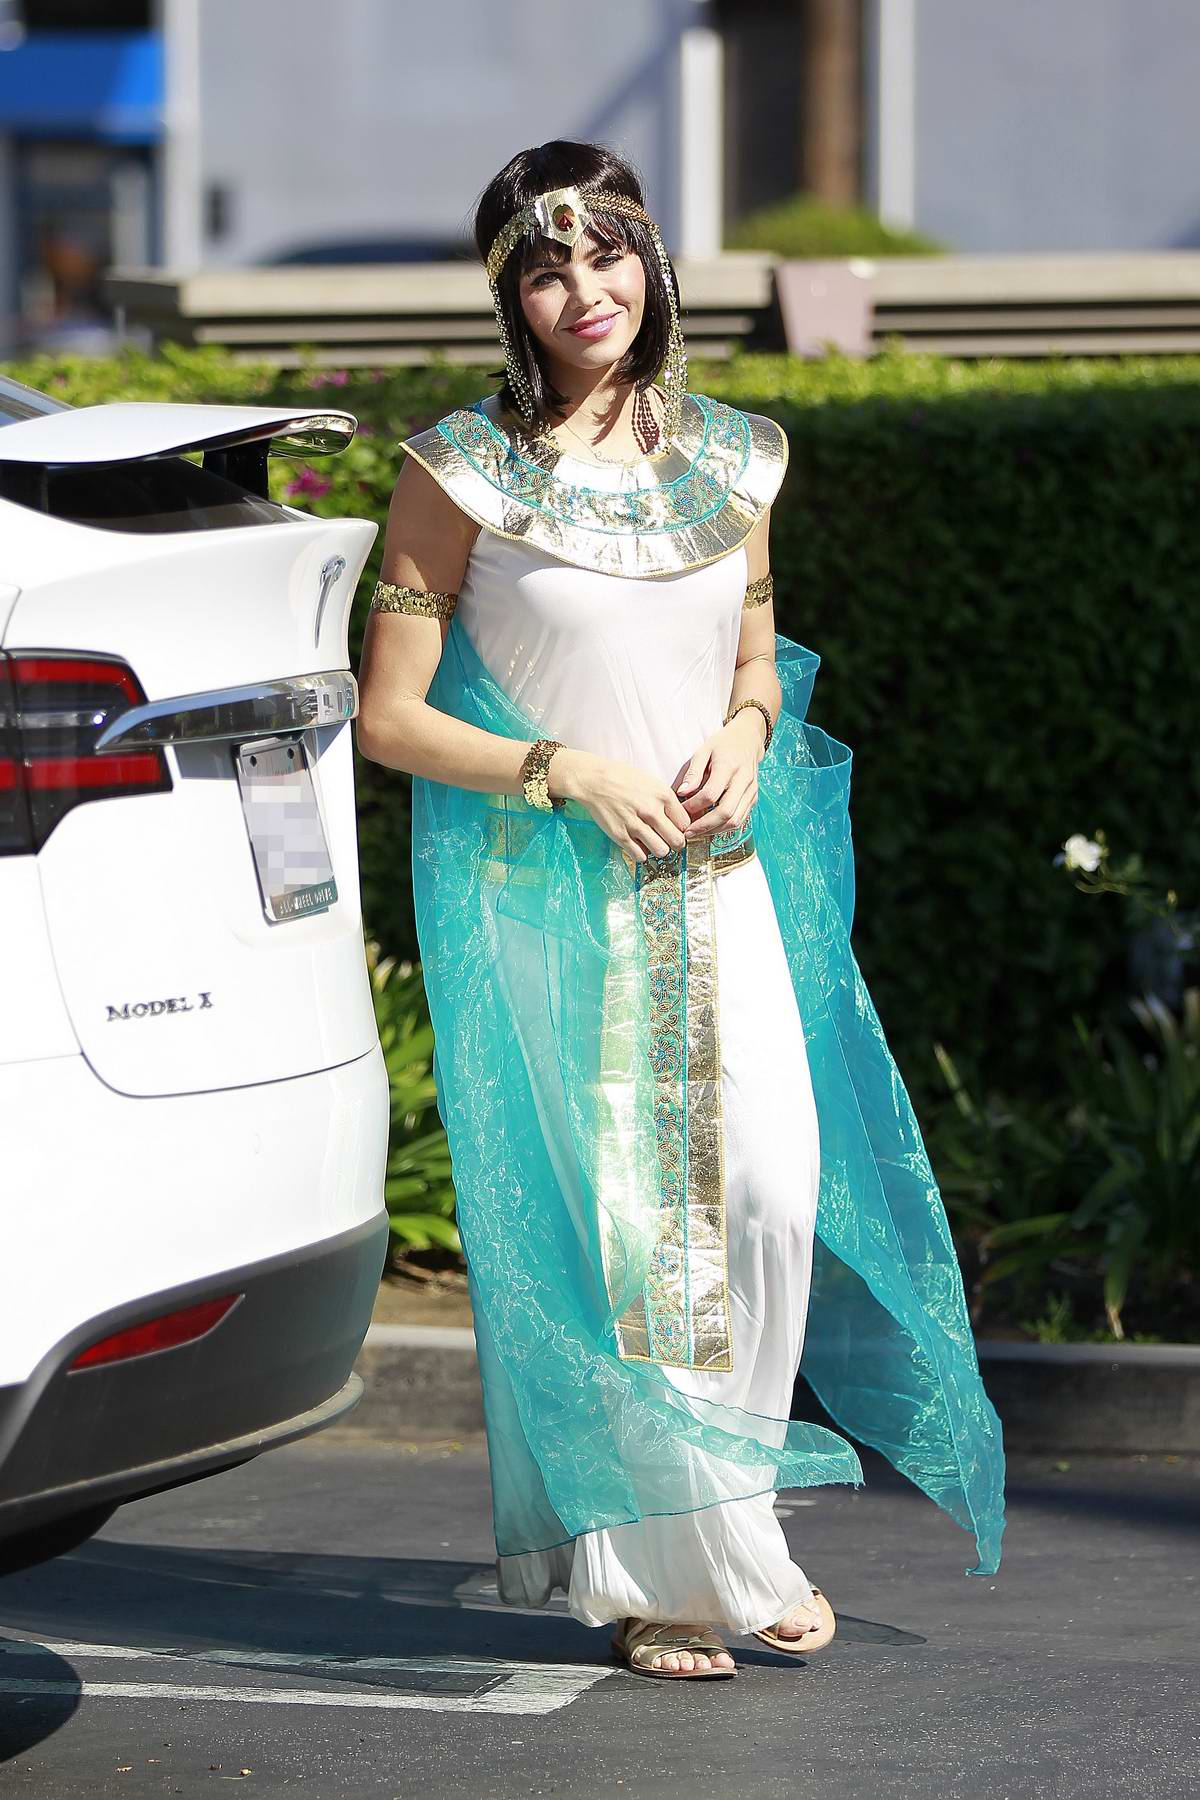 Jenna Dewan dresses as Cleopatra as she leaves a Halloween party with her daughter in Los Angeles